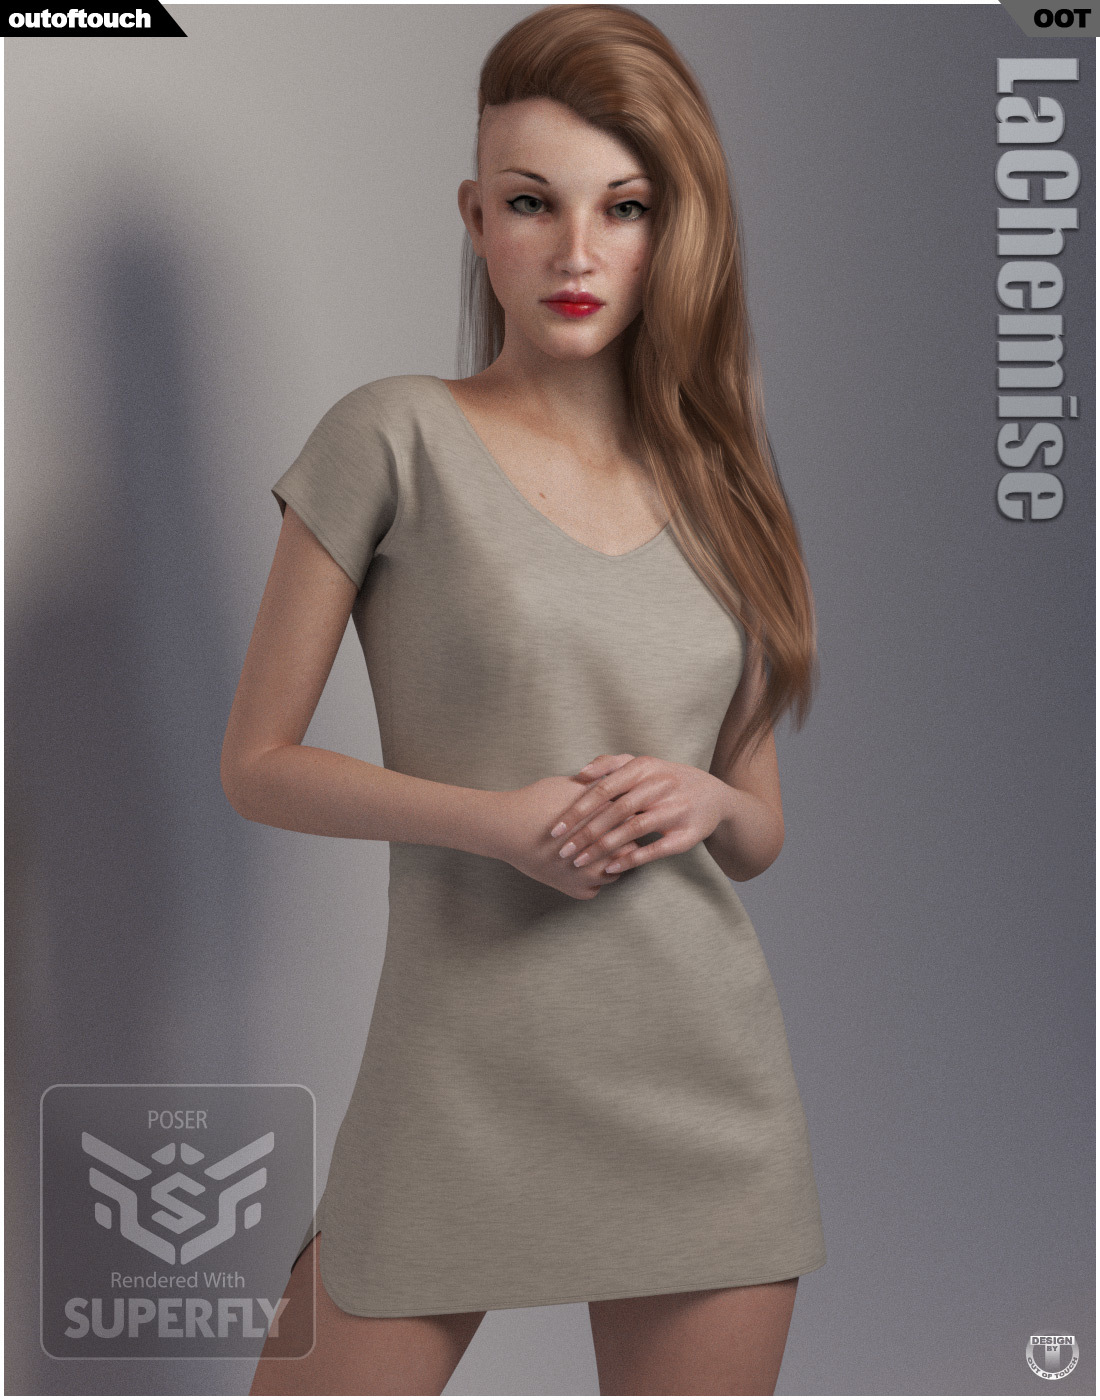 LaChemise for La Femme by outoftouch